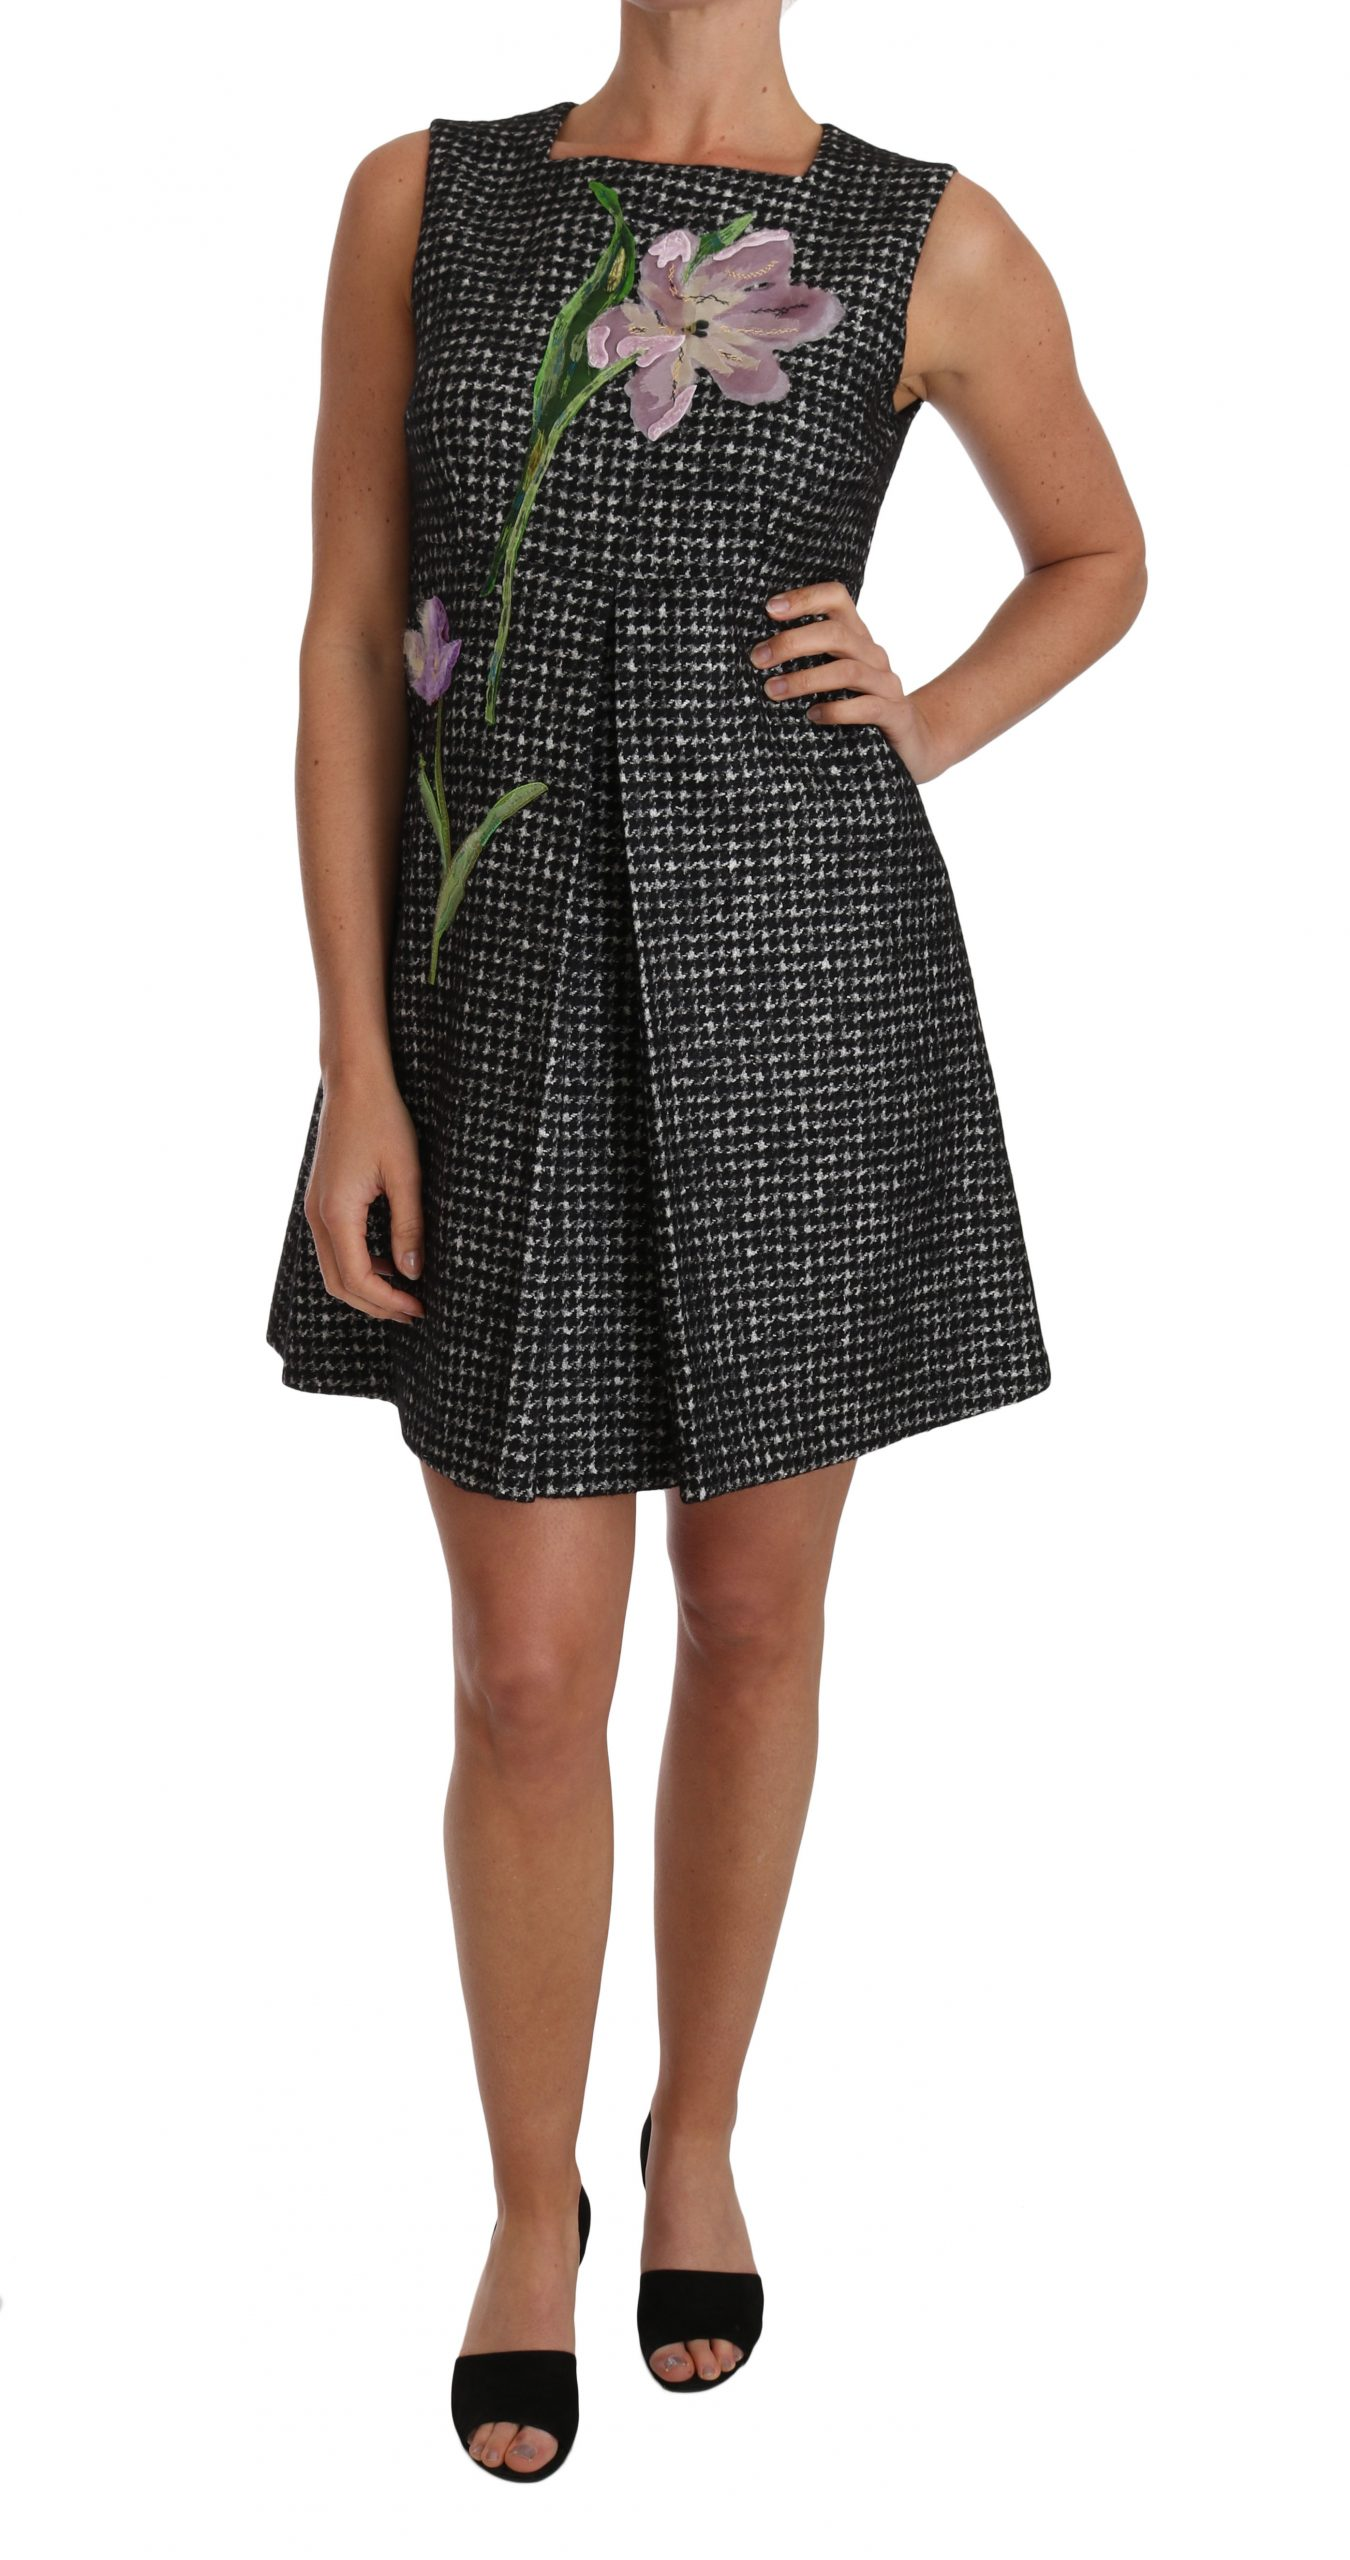 Dolce & Gabbana Women's Tulip Embroidered A-Line Shift Dress Gray DR1491 - IT42 M